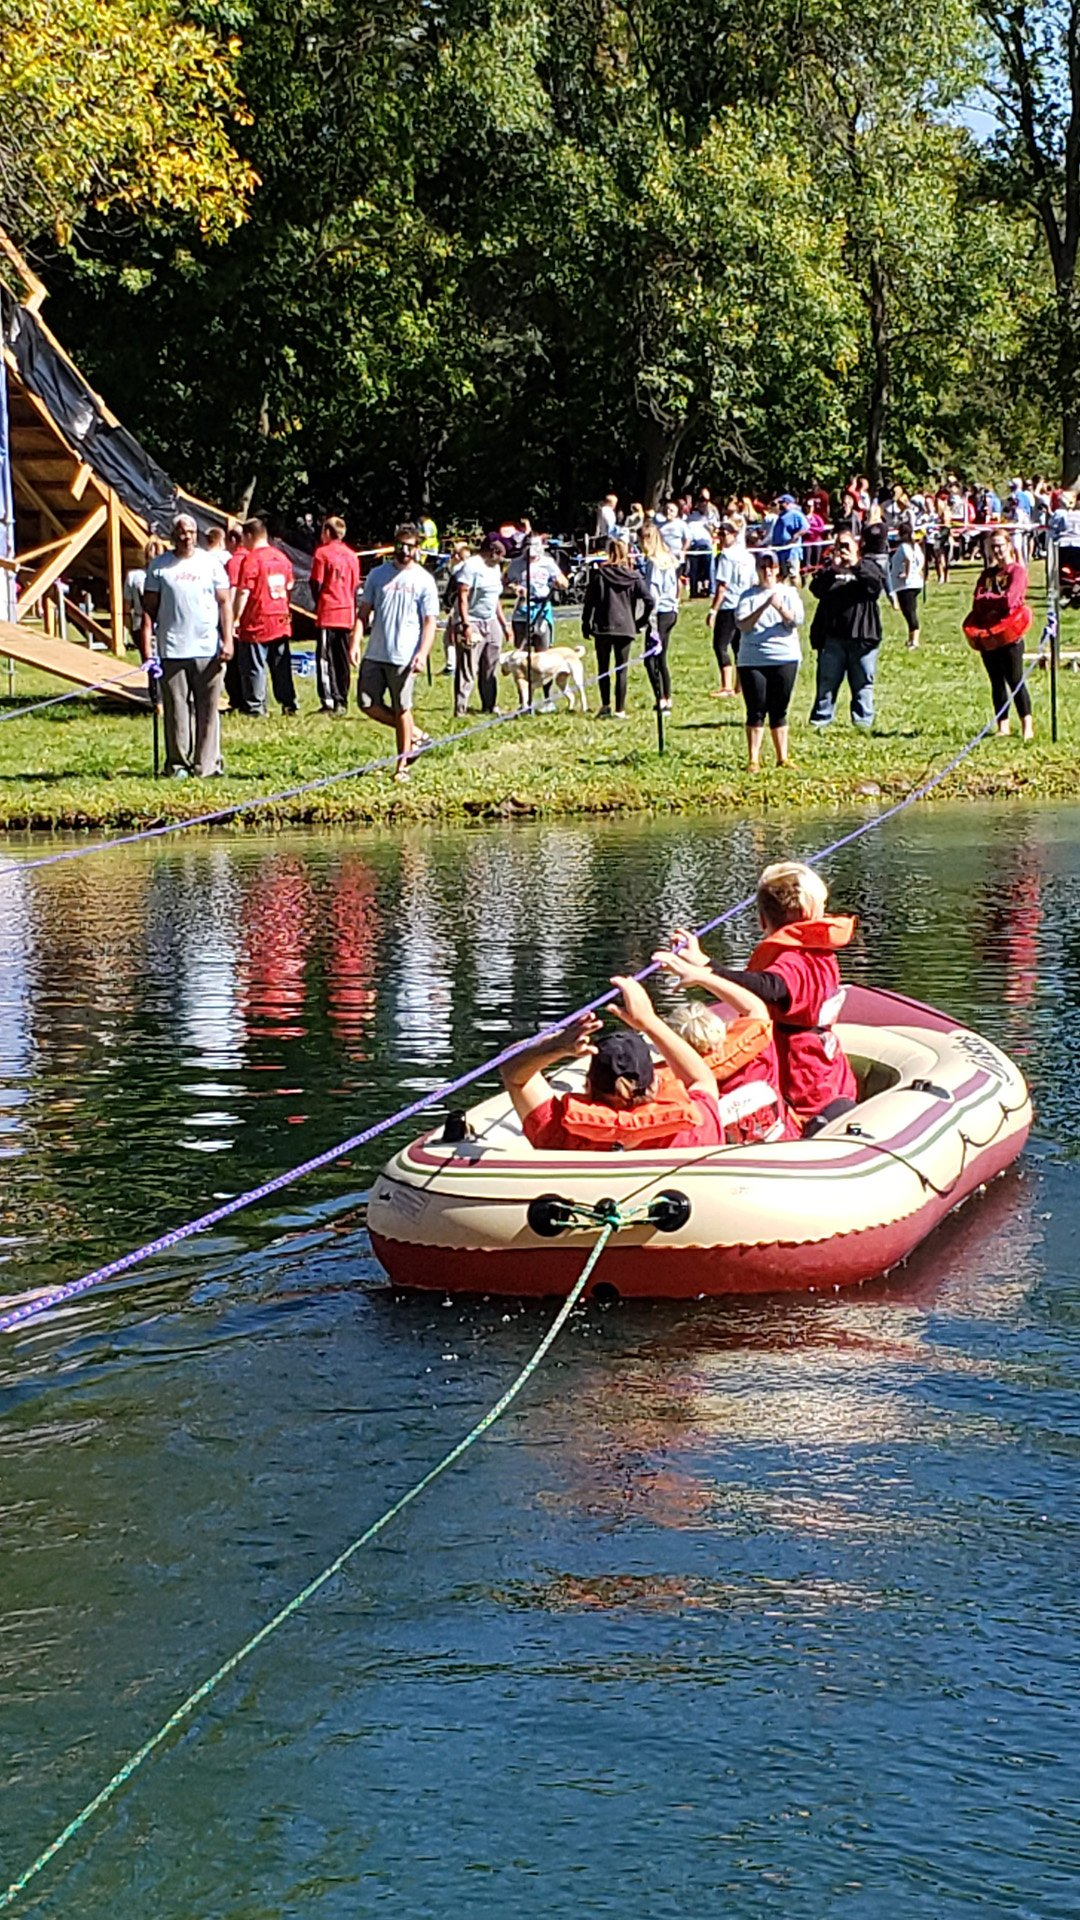 Participants Boating